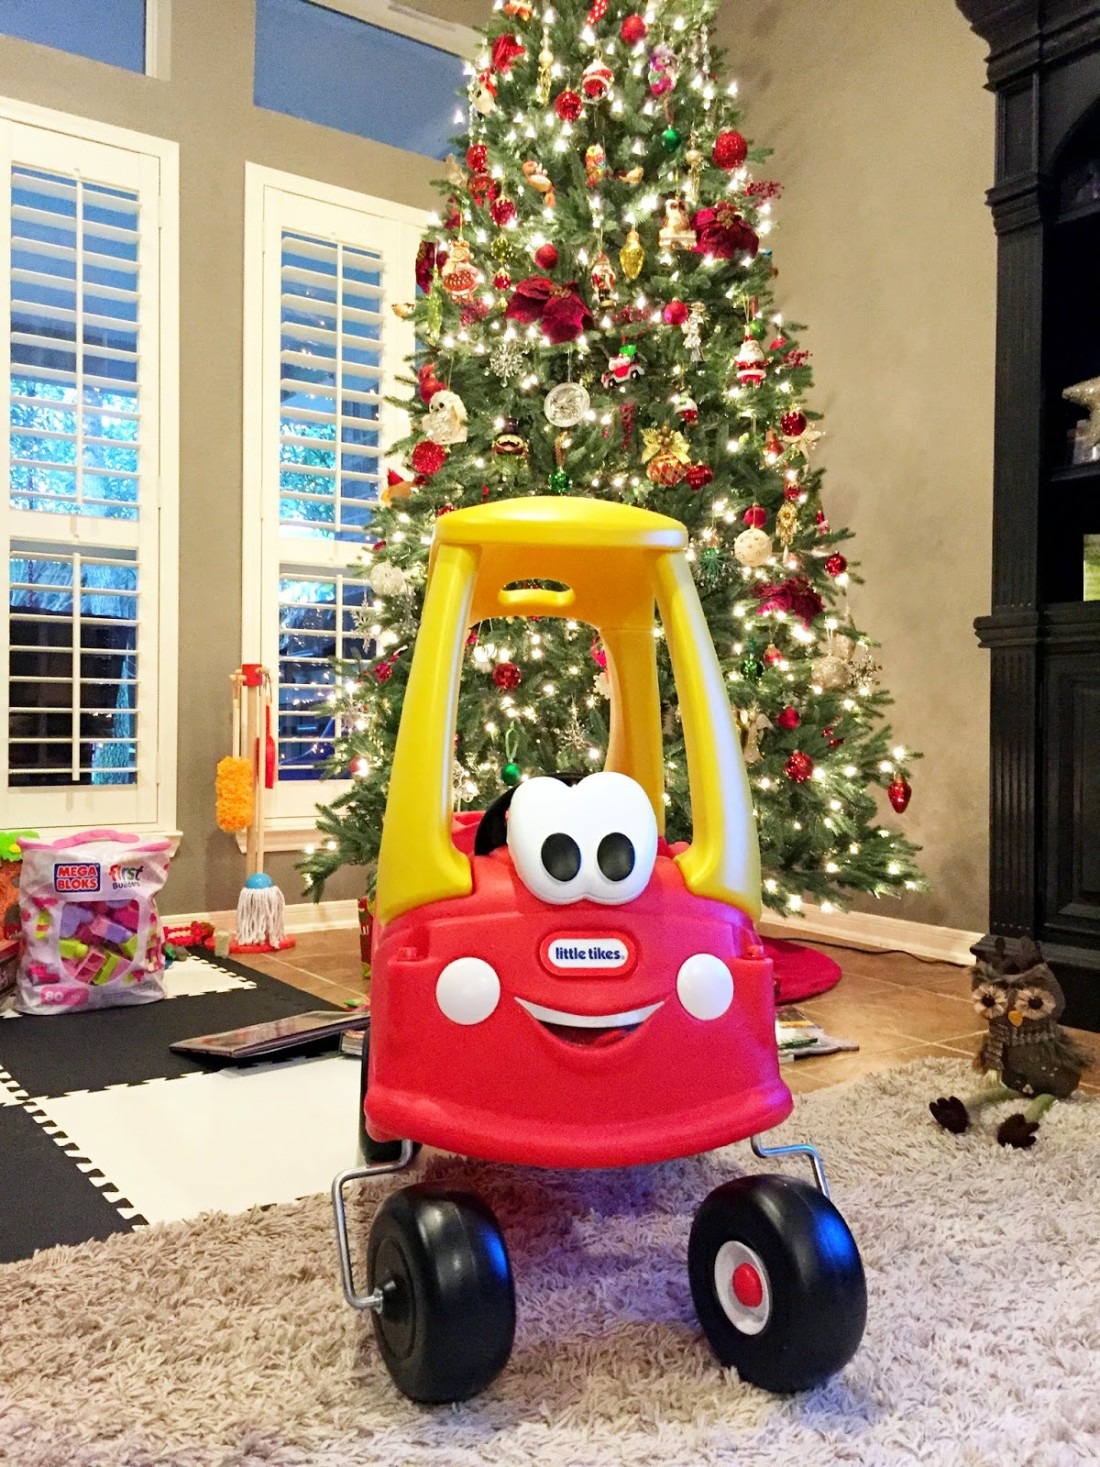 once we got home santa had left behind her big gift since it didnt fit on his sleigh she is in love with this thing